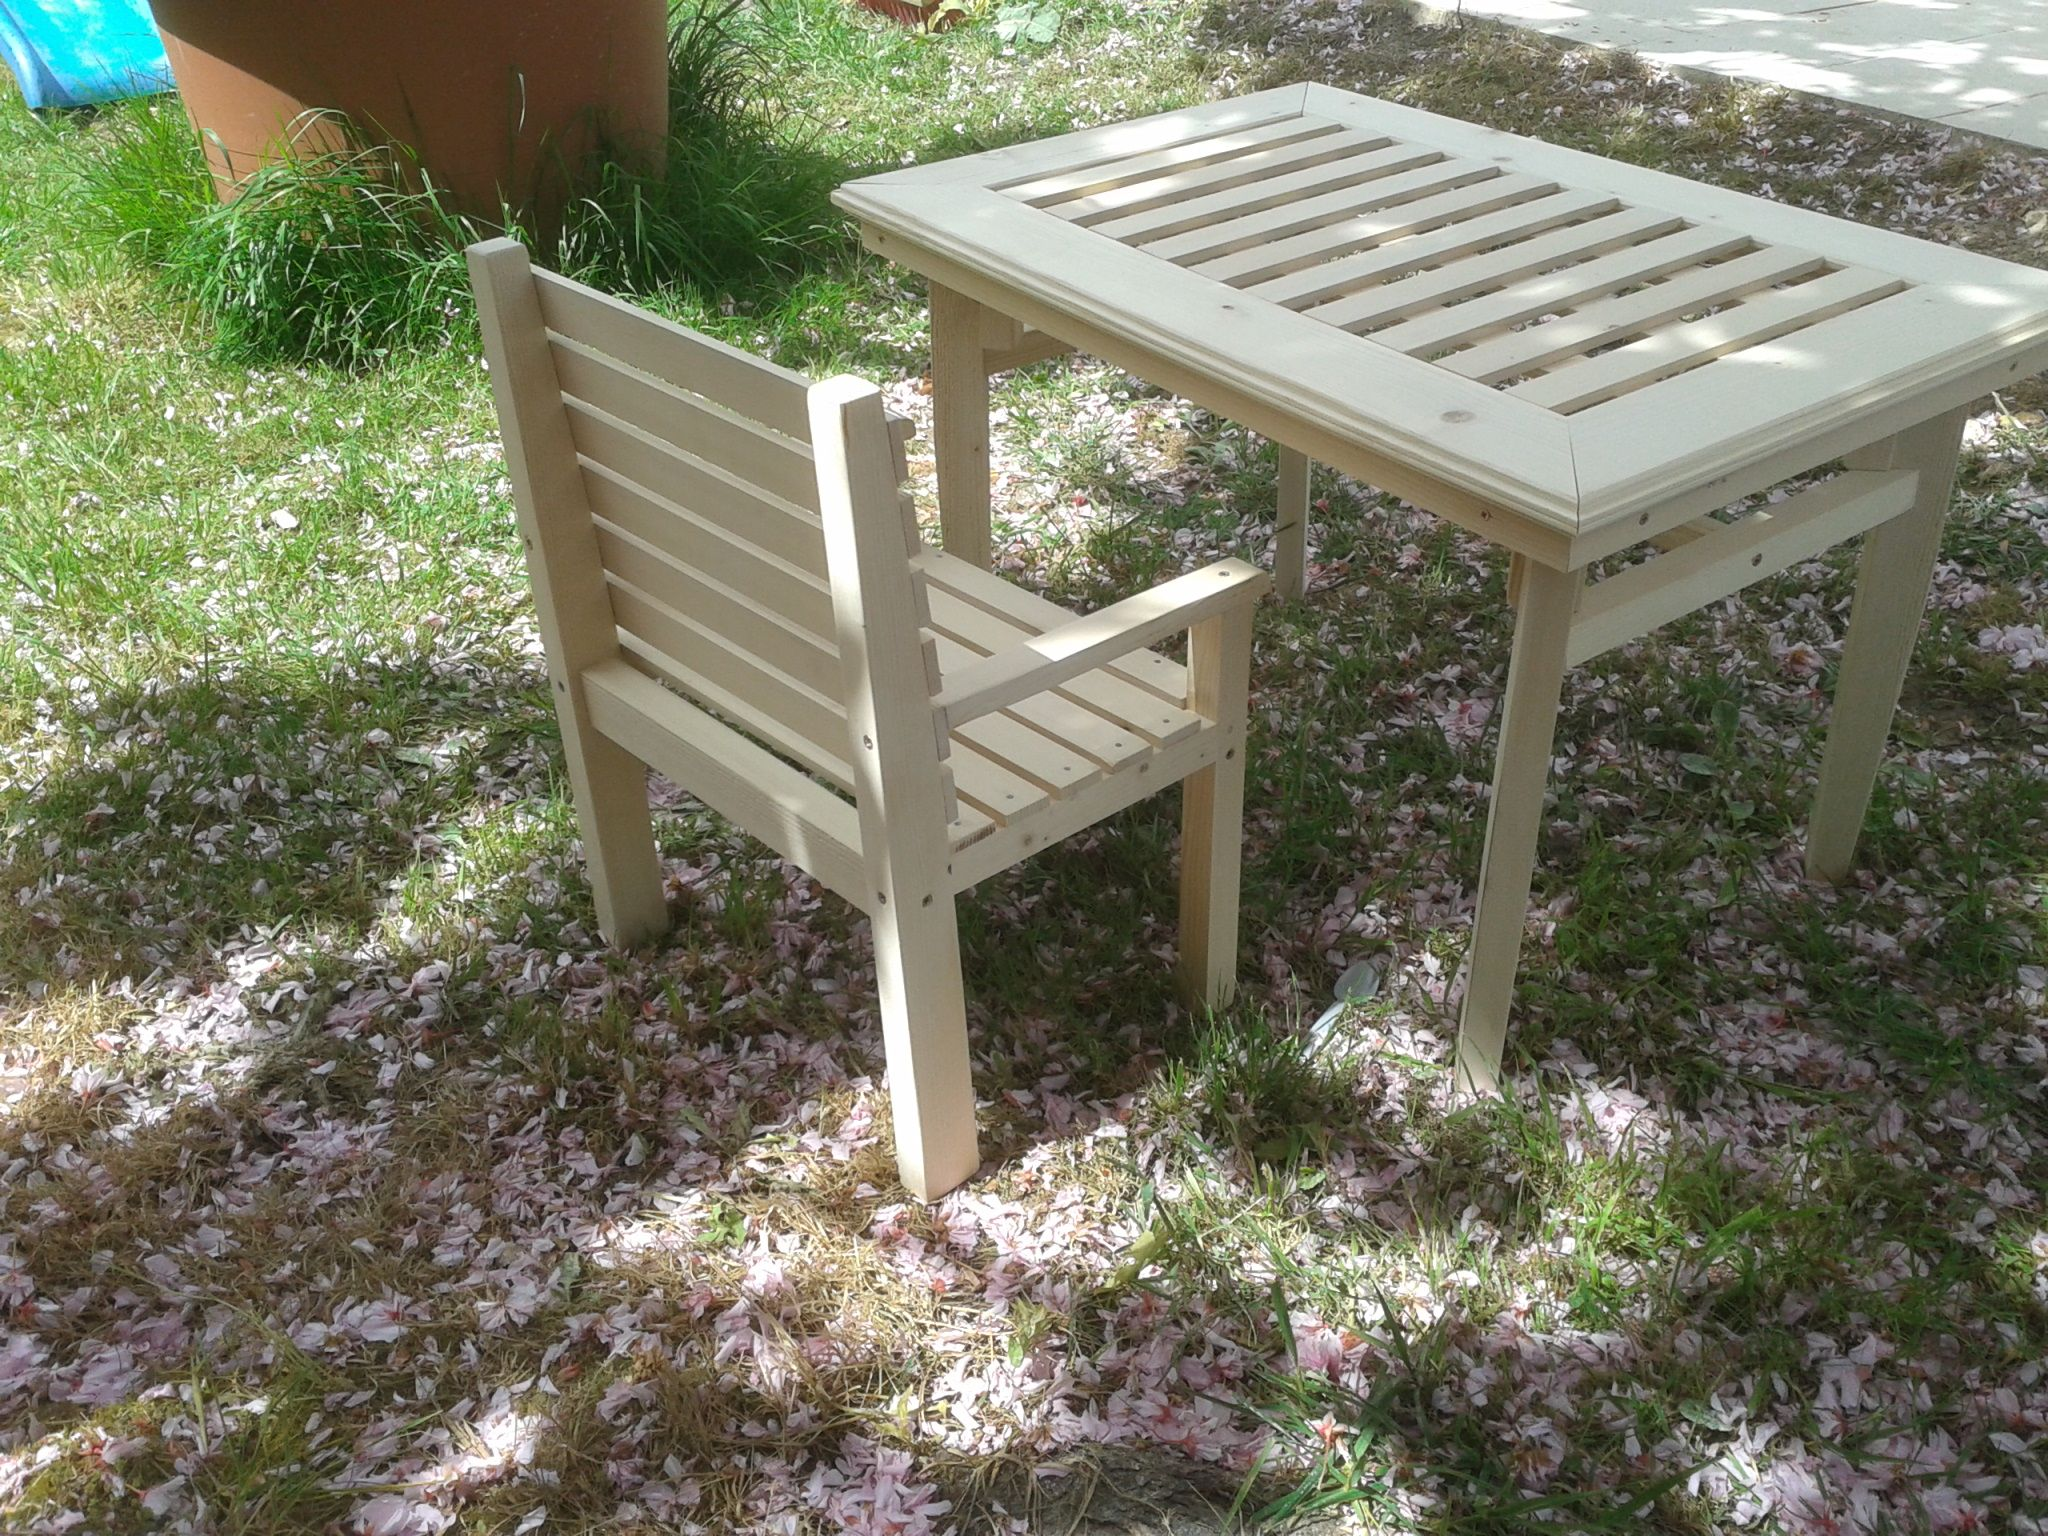 Ameublement Jardin Inspirant Table De Jardin Chaise Instructions De Montage